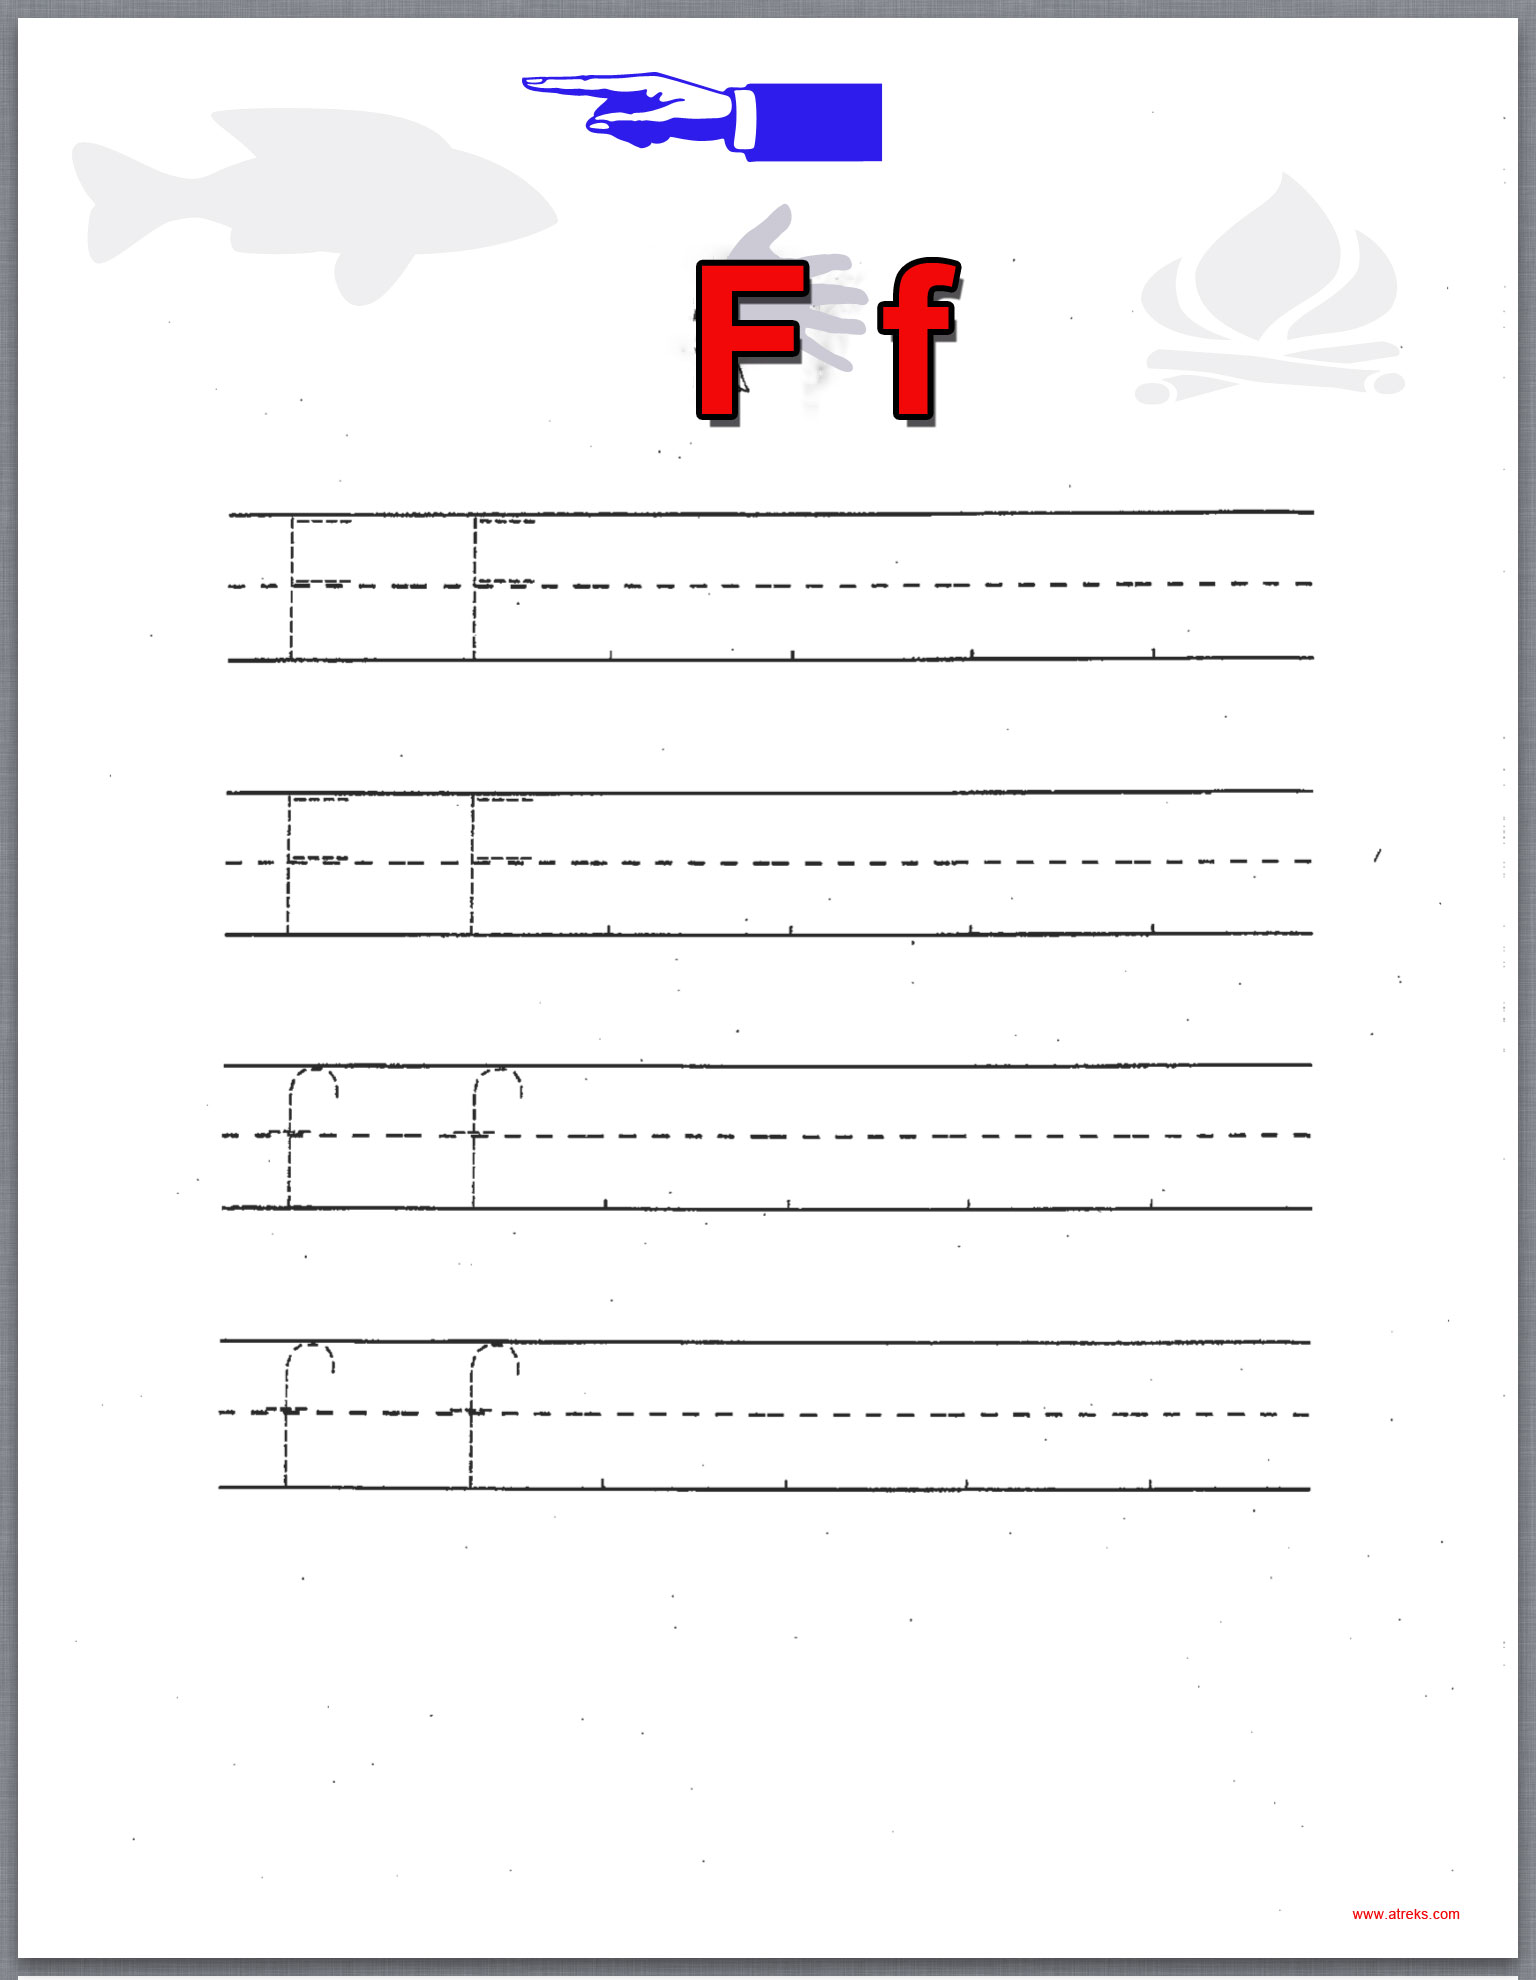 Ff on printable letters to trace